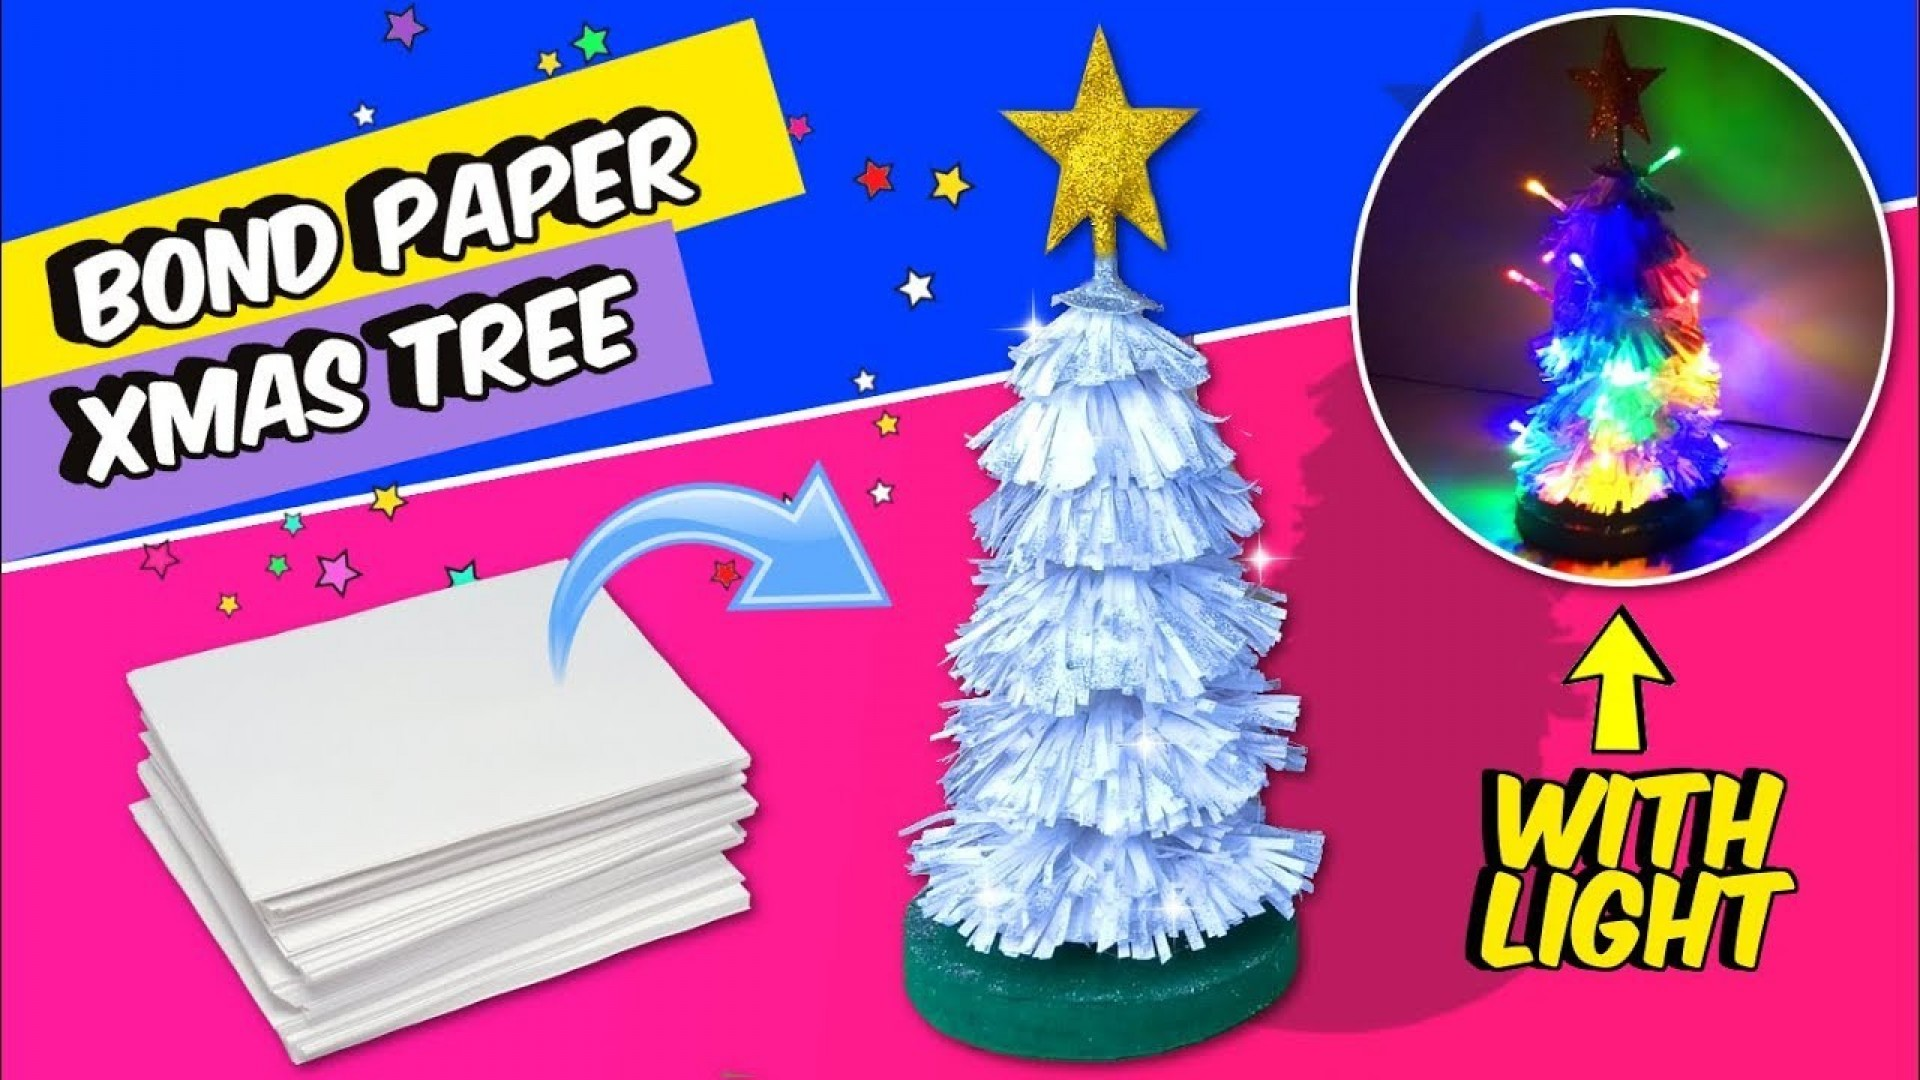 024 Evaluation Essay Topics Easy Ideas Diy For Christmas Ojib O Awful Questions With Criteria 1920